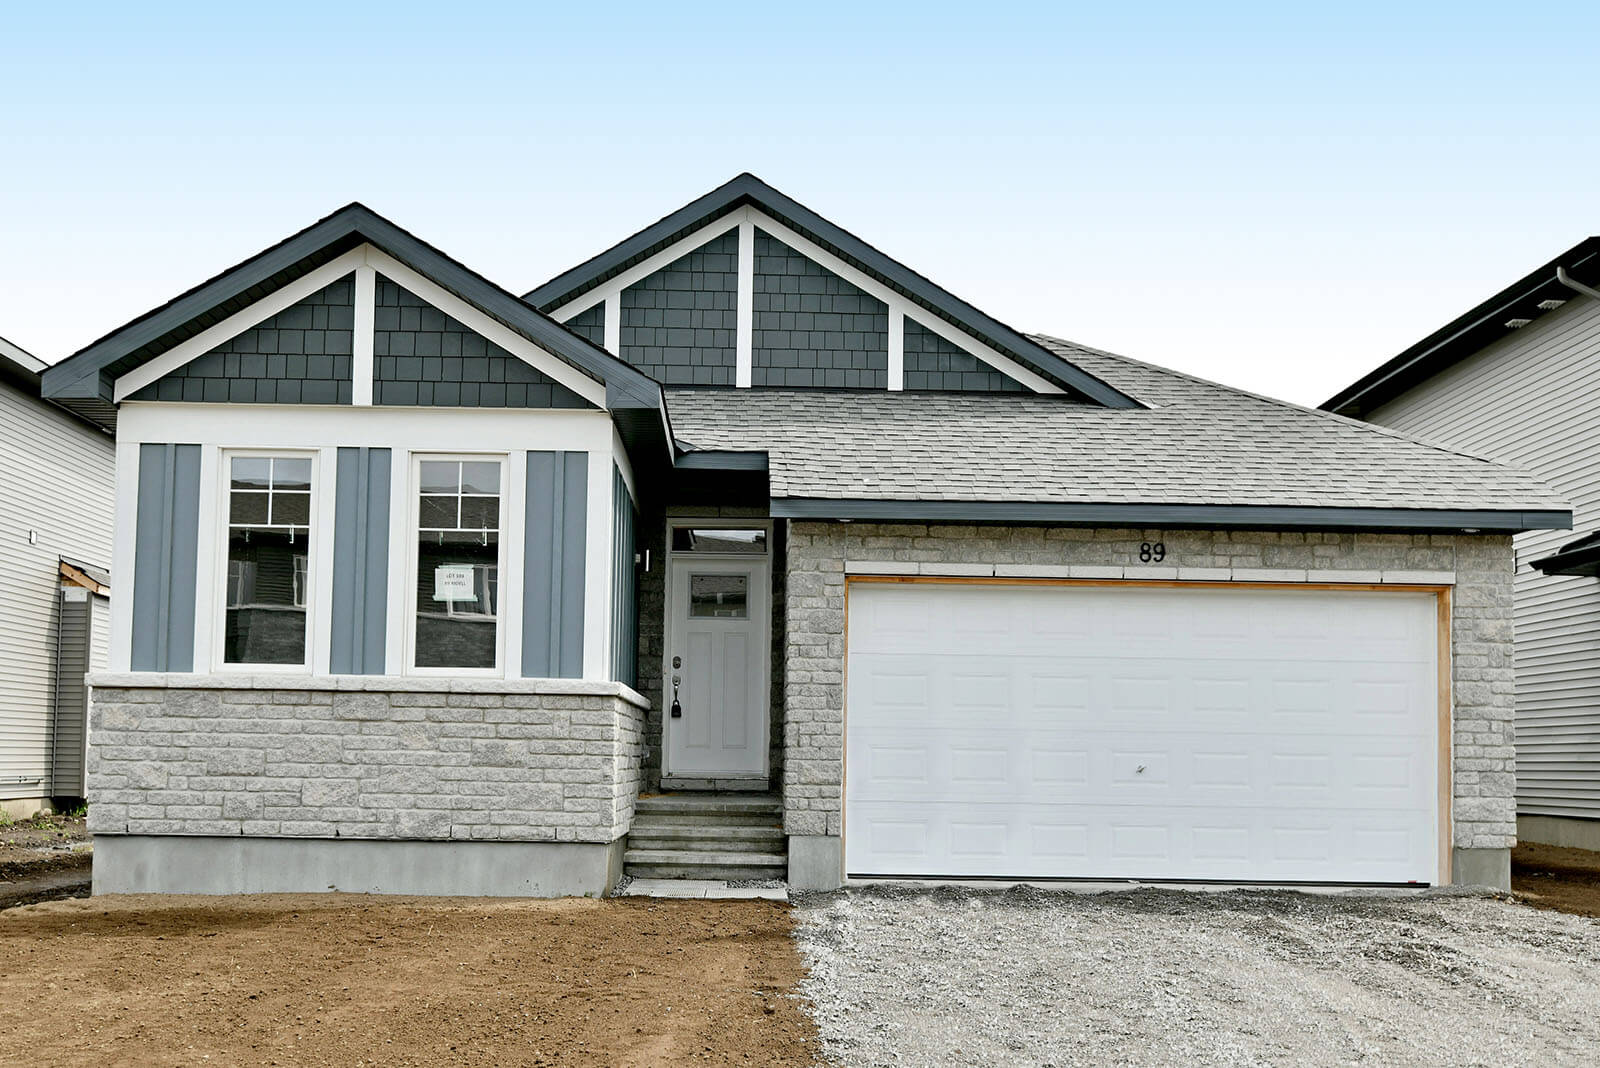 New Ottawa Single Family Home Quick Possession Cameron in Millers Crossing in Carleton Place, located at 89 Riddell St, Carleton Place Built By Cardel Homes